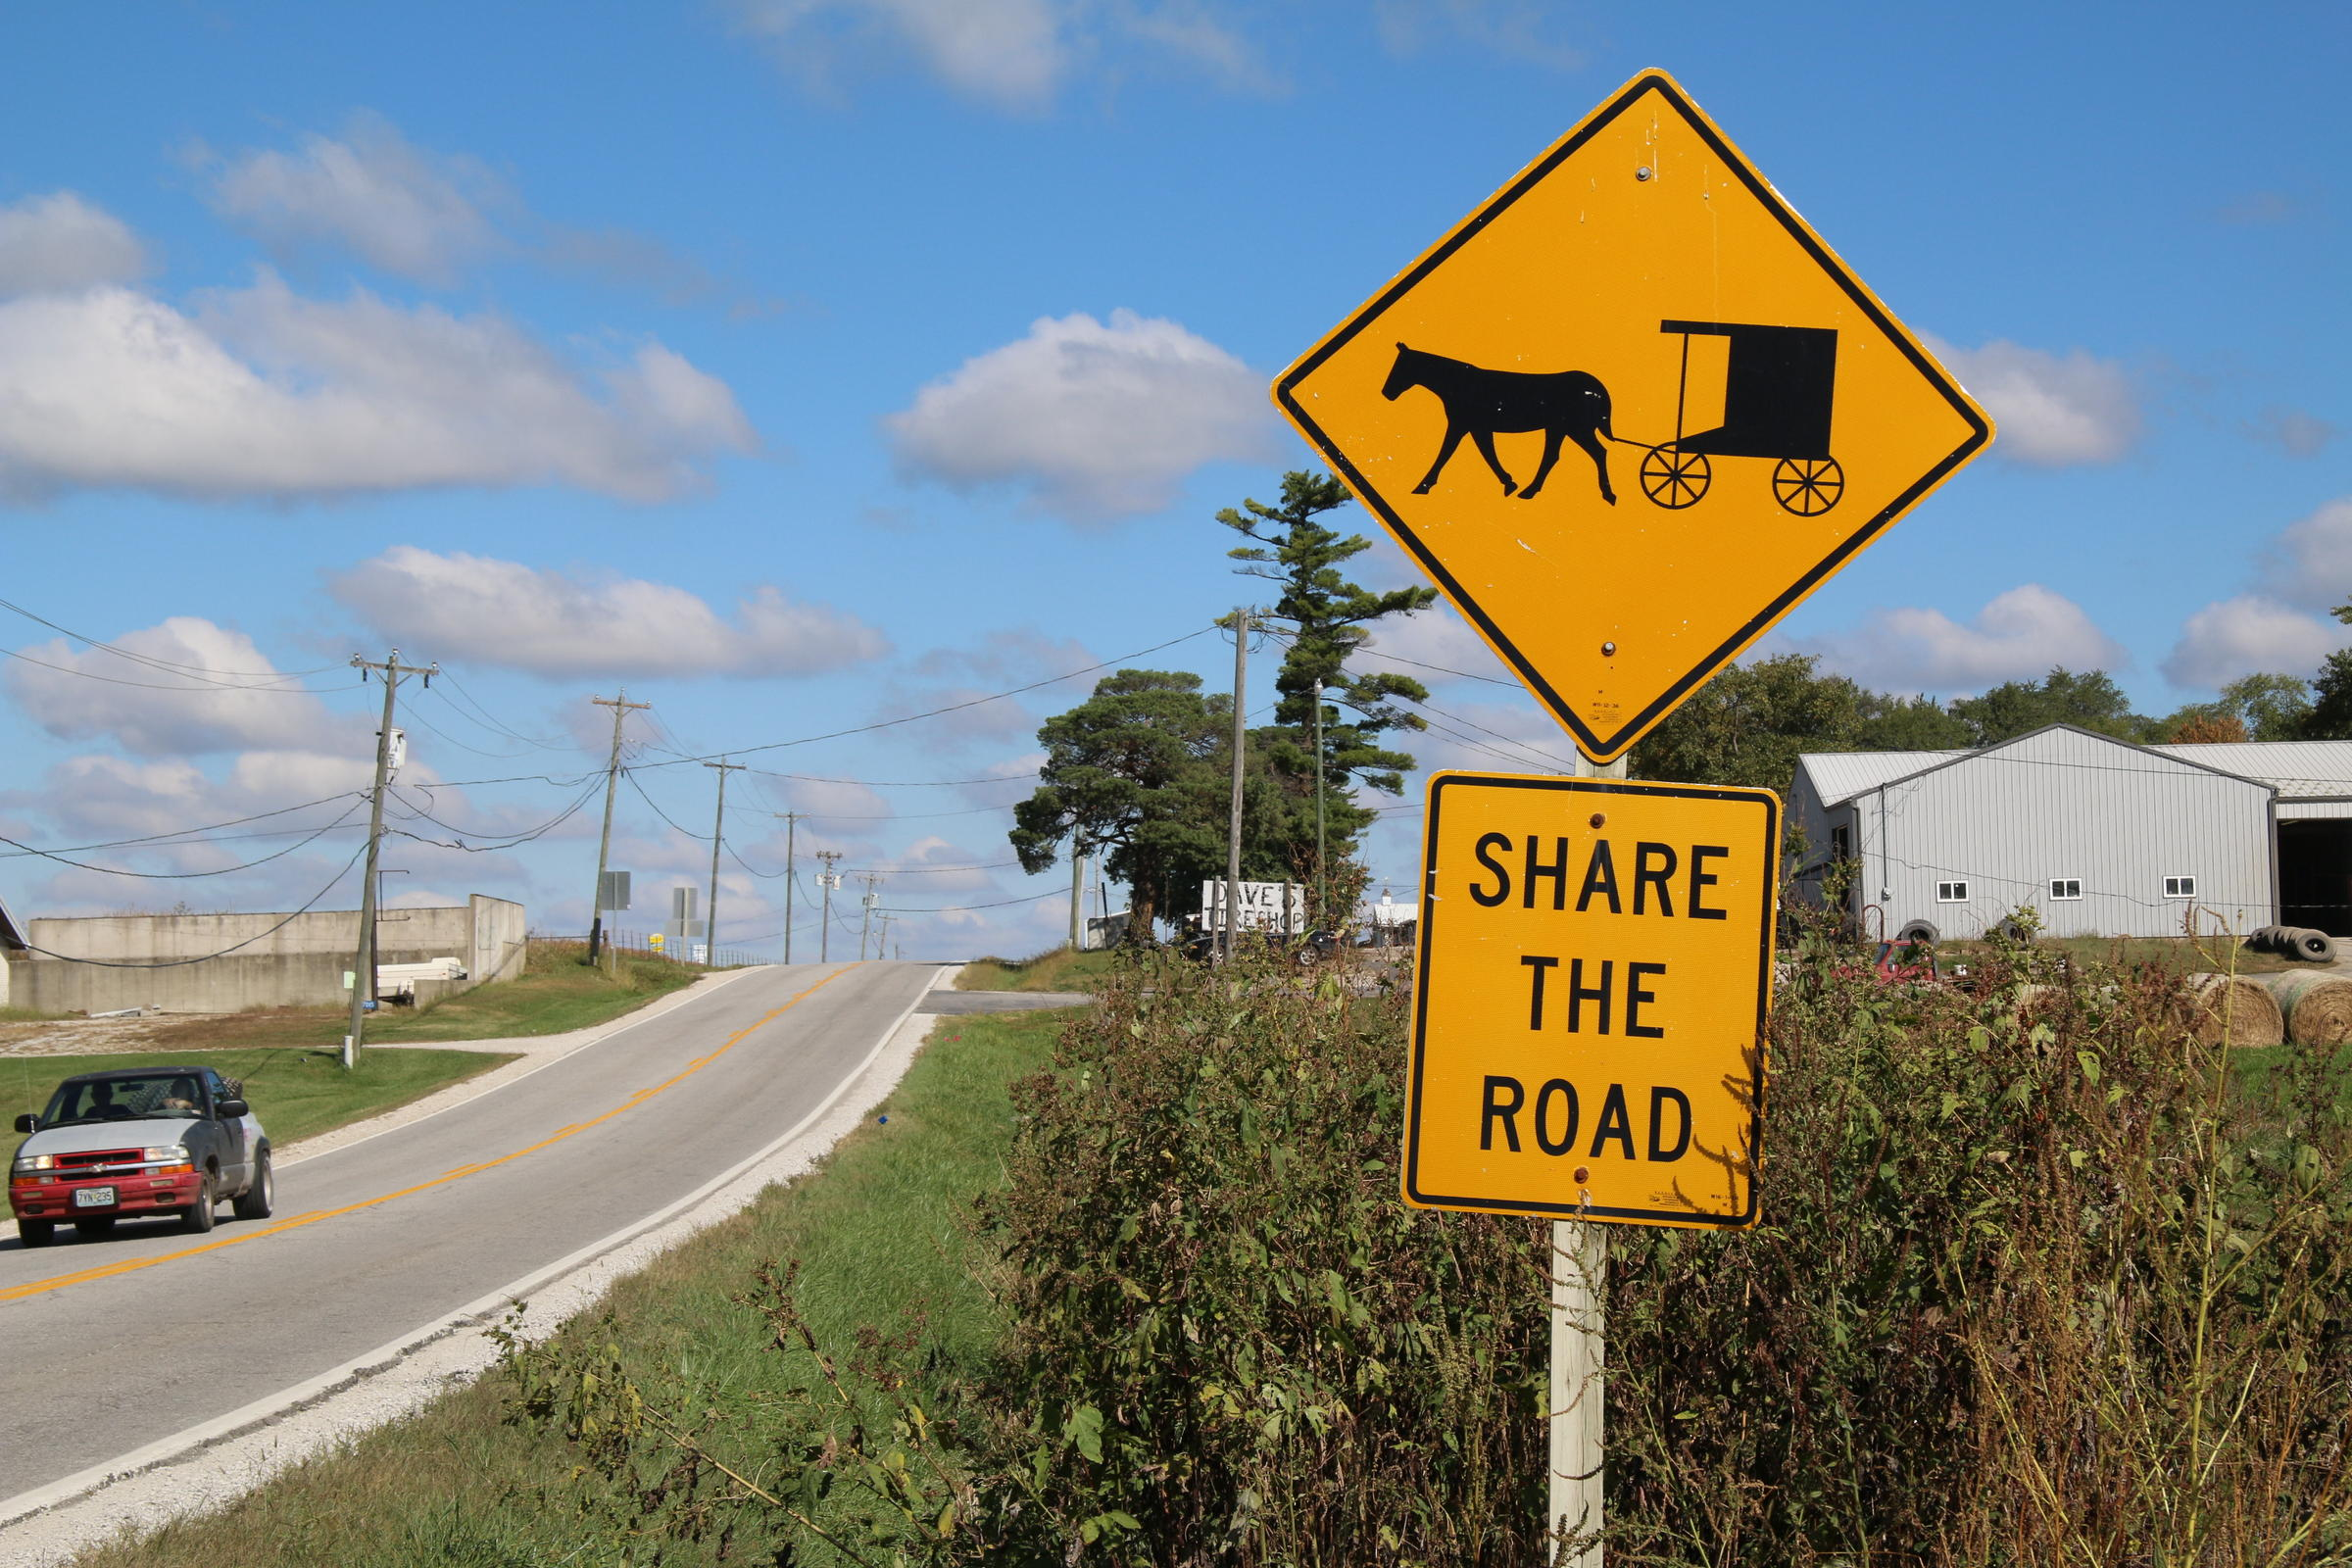 Amish and Mennonite Patients Push An Experiment In Health